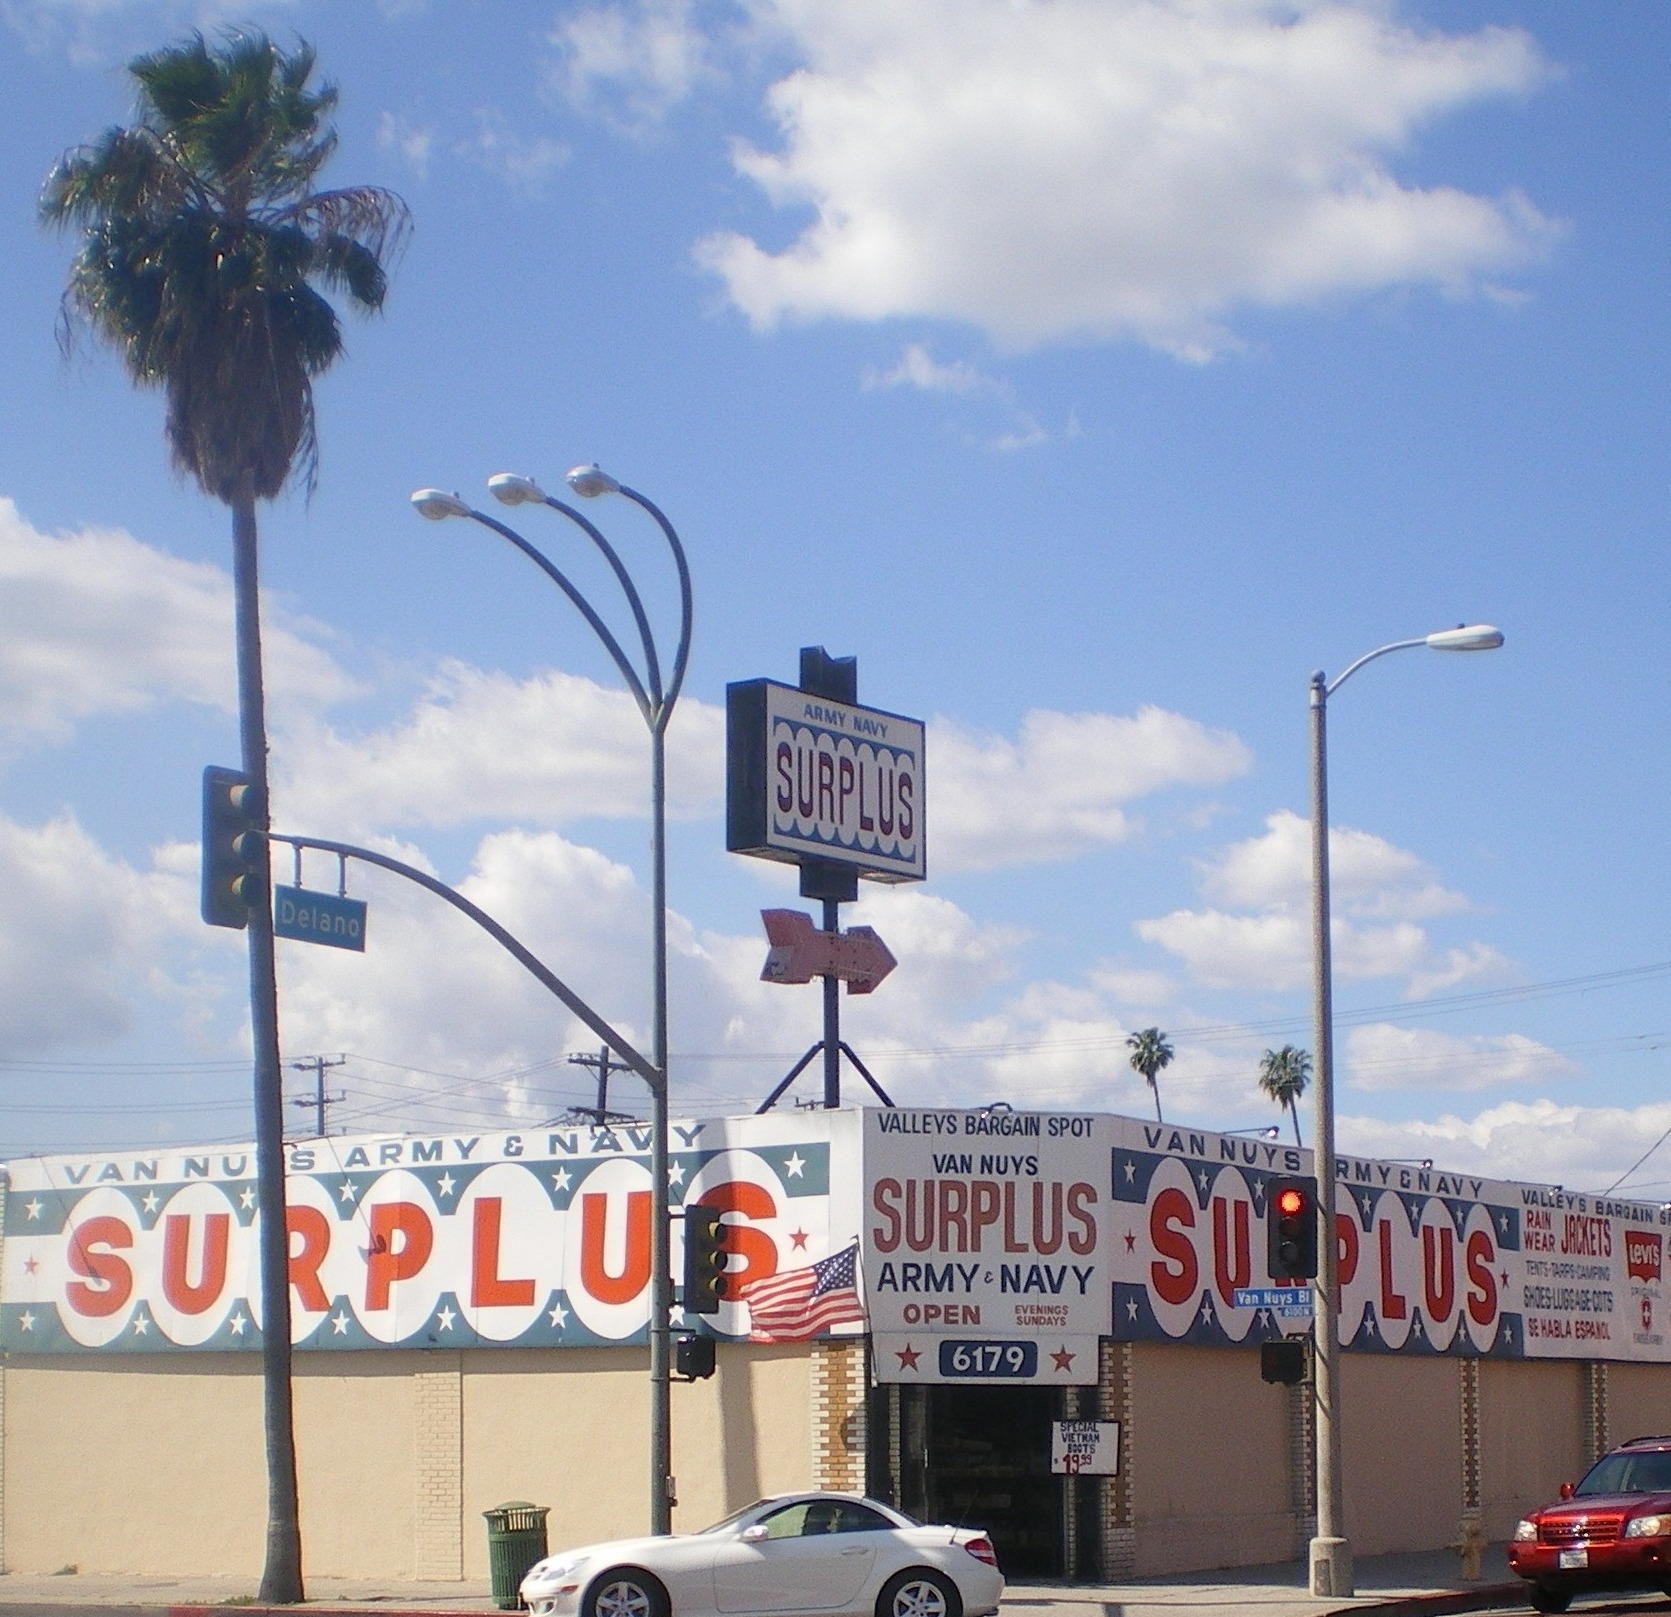 Surplus store - Wikipedia